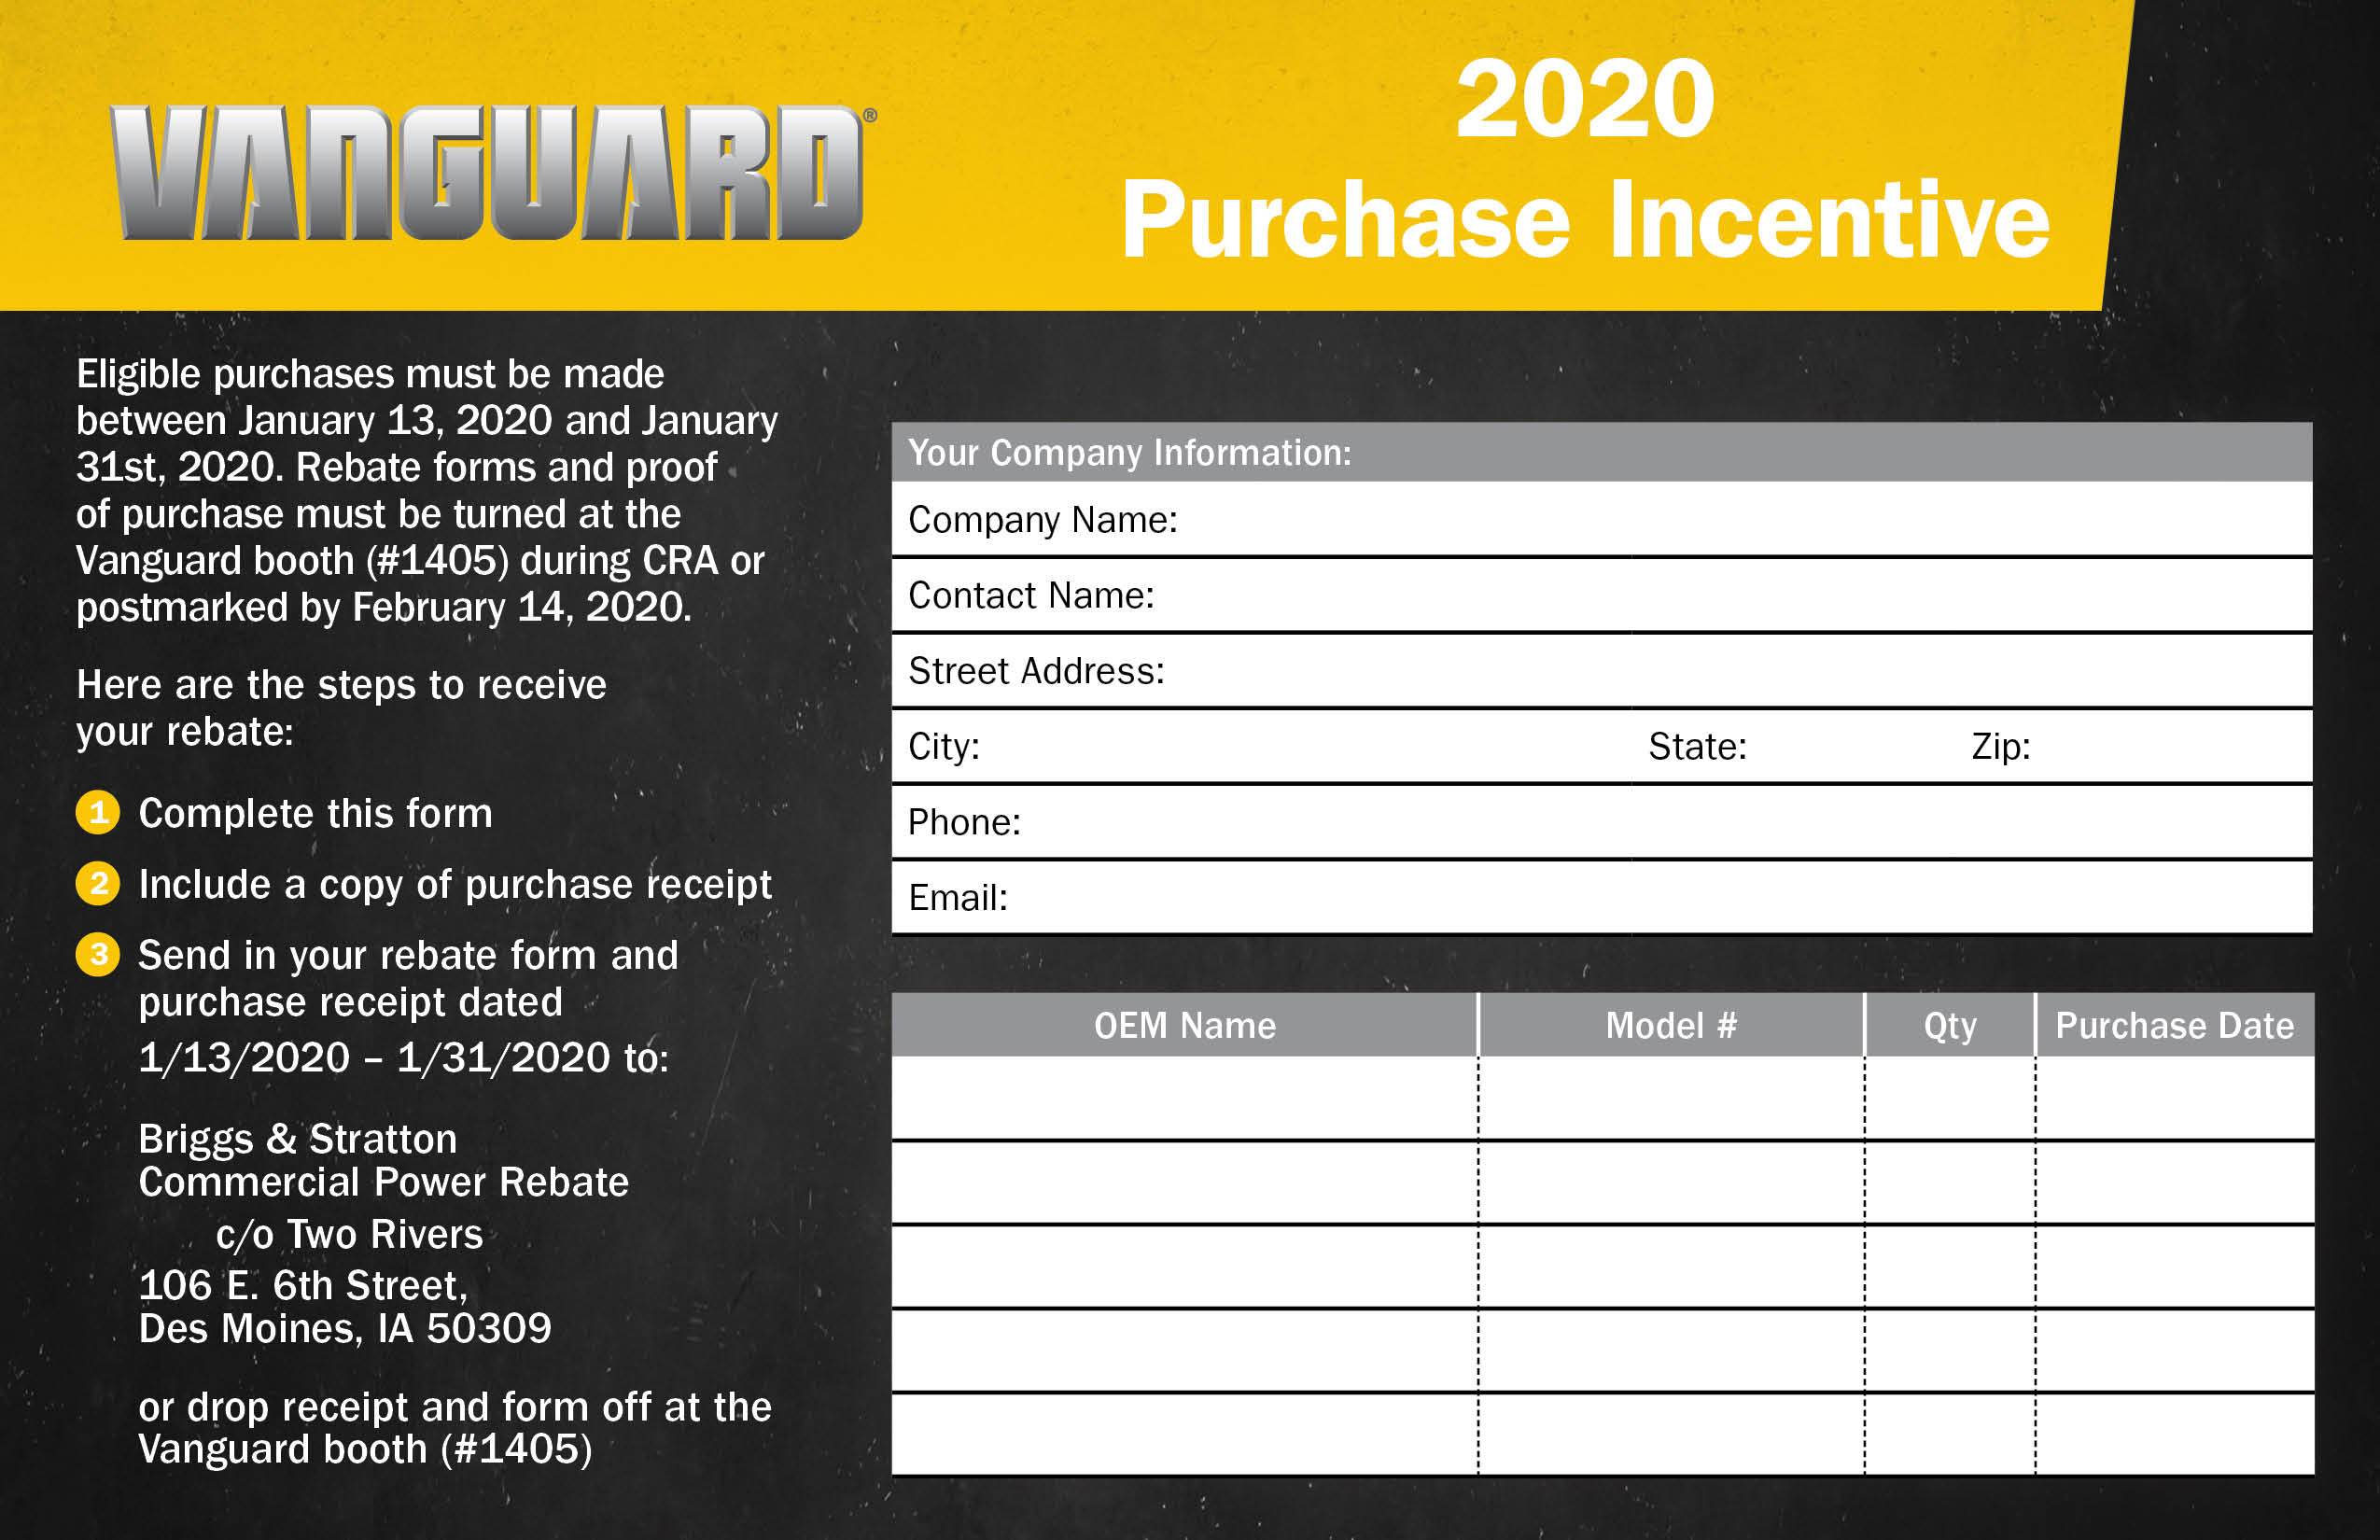 Vanguard 2020 CRA rental fleet purchase incentive rebate form